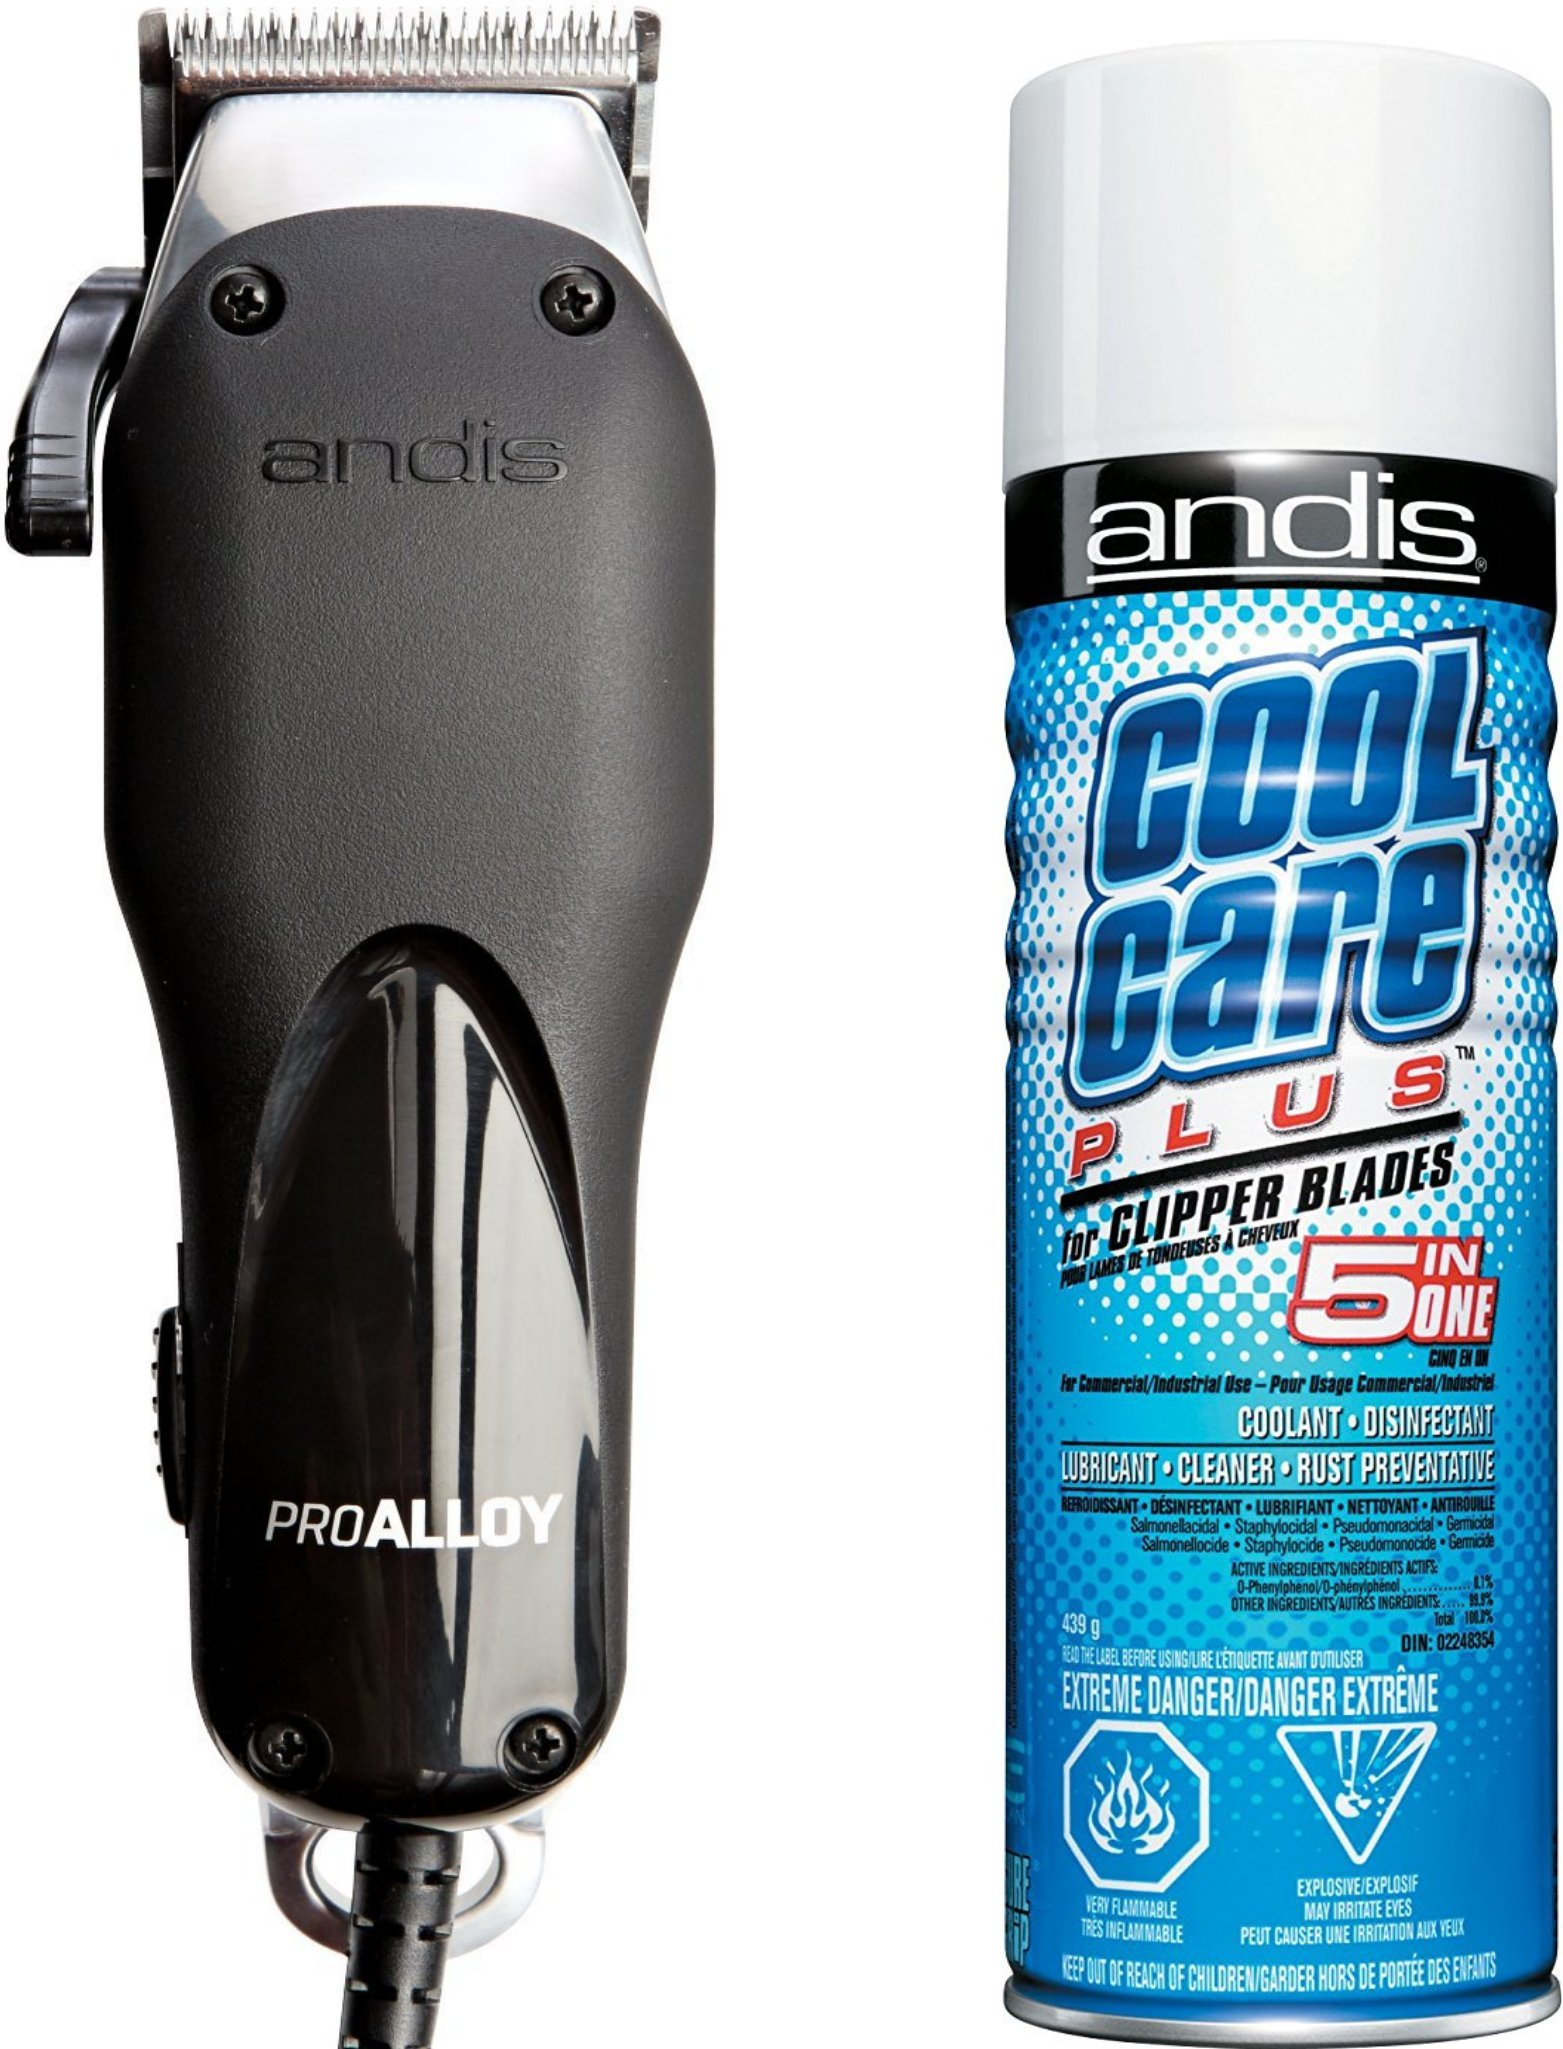 Andis Professional Hair Clippers with All NEW XTR (Extreme Temperature Reduction) Technology and BONUS FREE Andis Cool Care Plus Clipper Blade Cleaner